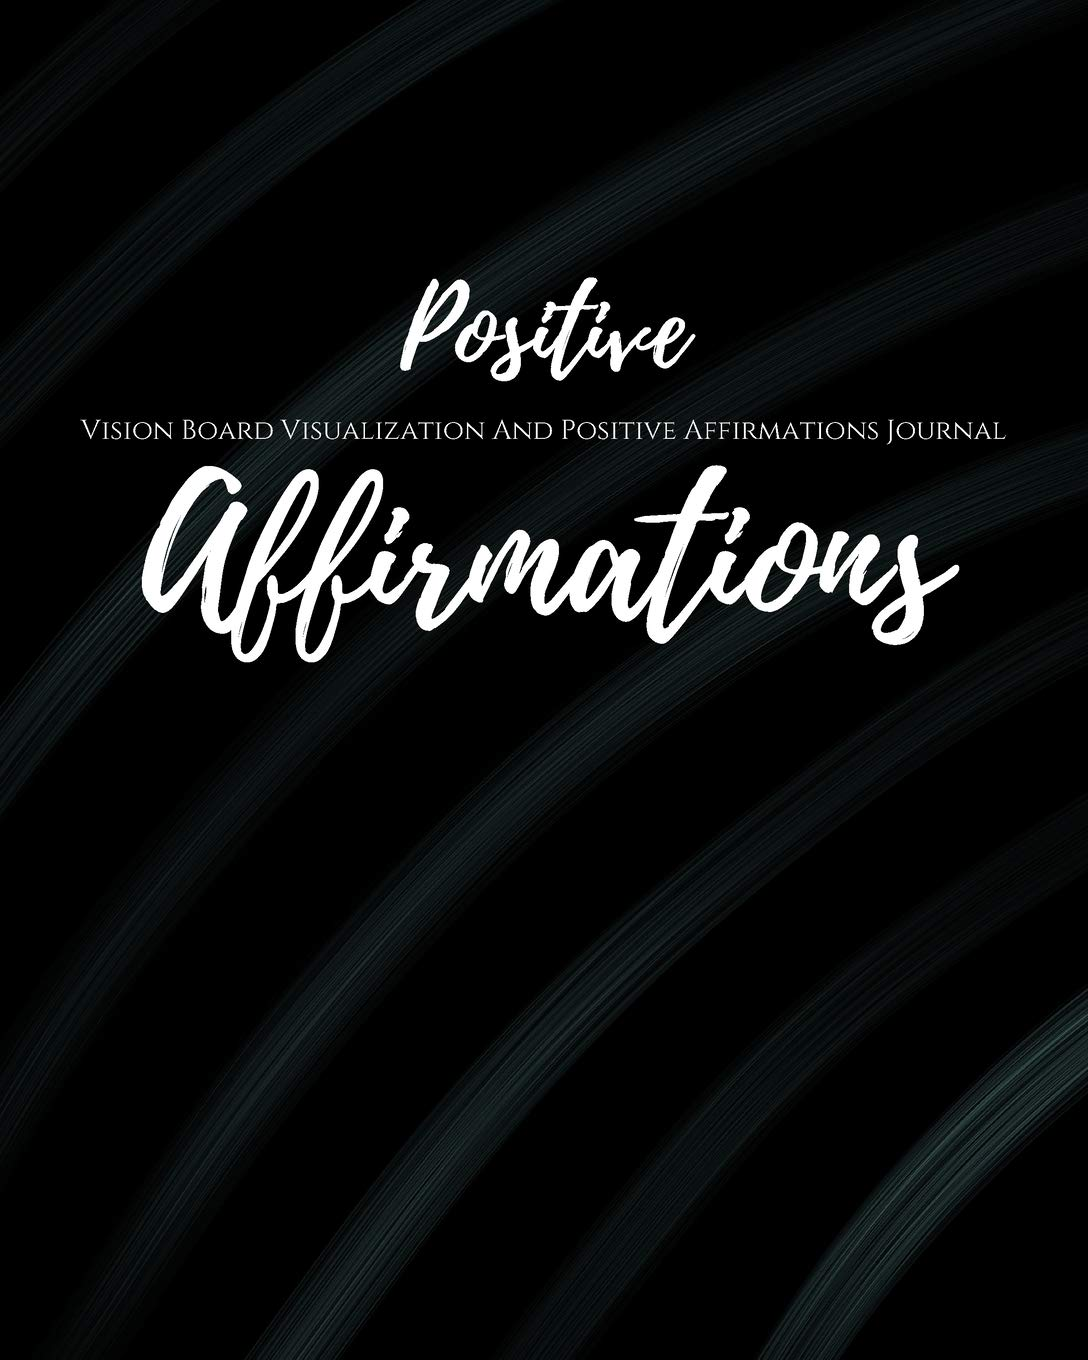 Positive Affirmations  Law Of Attraction Goal Planner Organizer  Vision Board Visualization And Positive Affirmations Journal  Dream Board Vision ... Half Lined Pages For Scripting And Note Writing